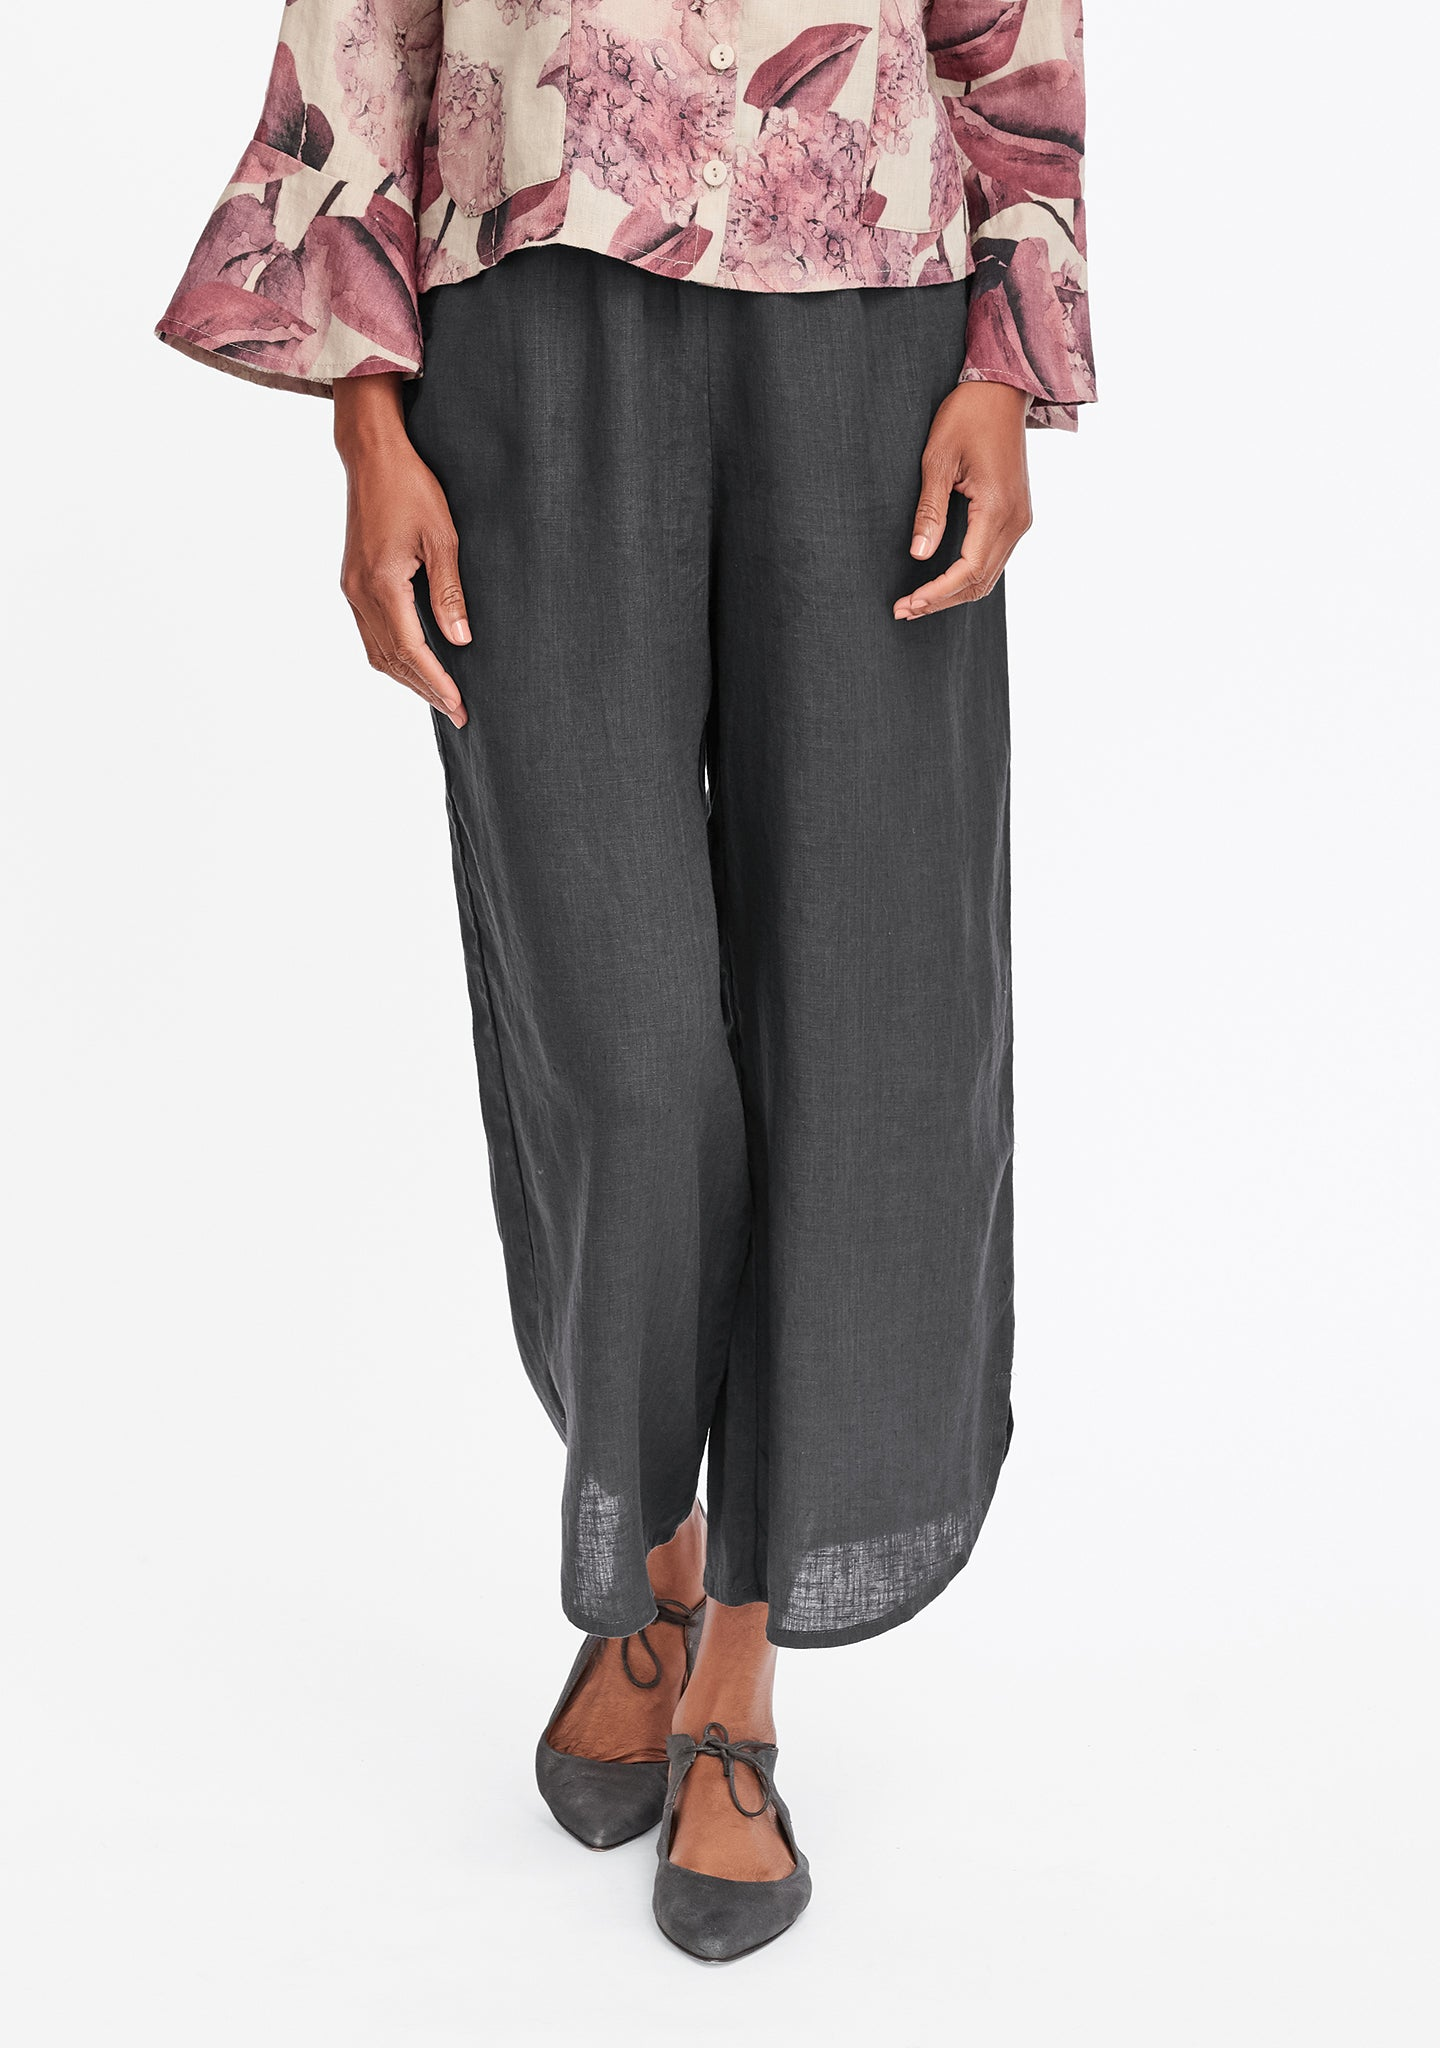 shirttail flood linen pants with elastic waist grey